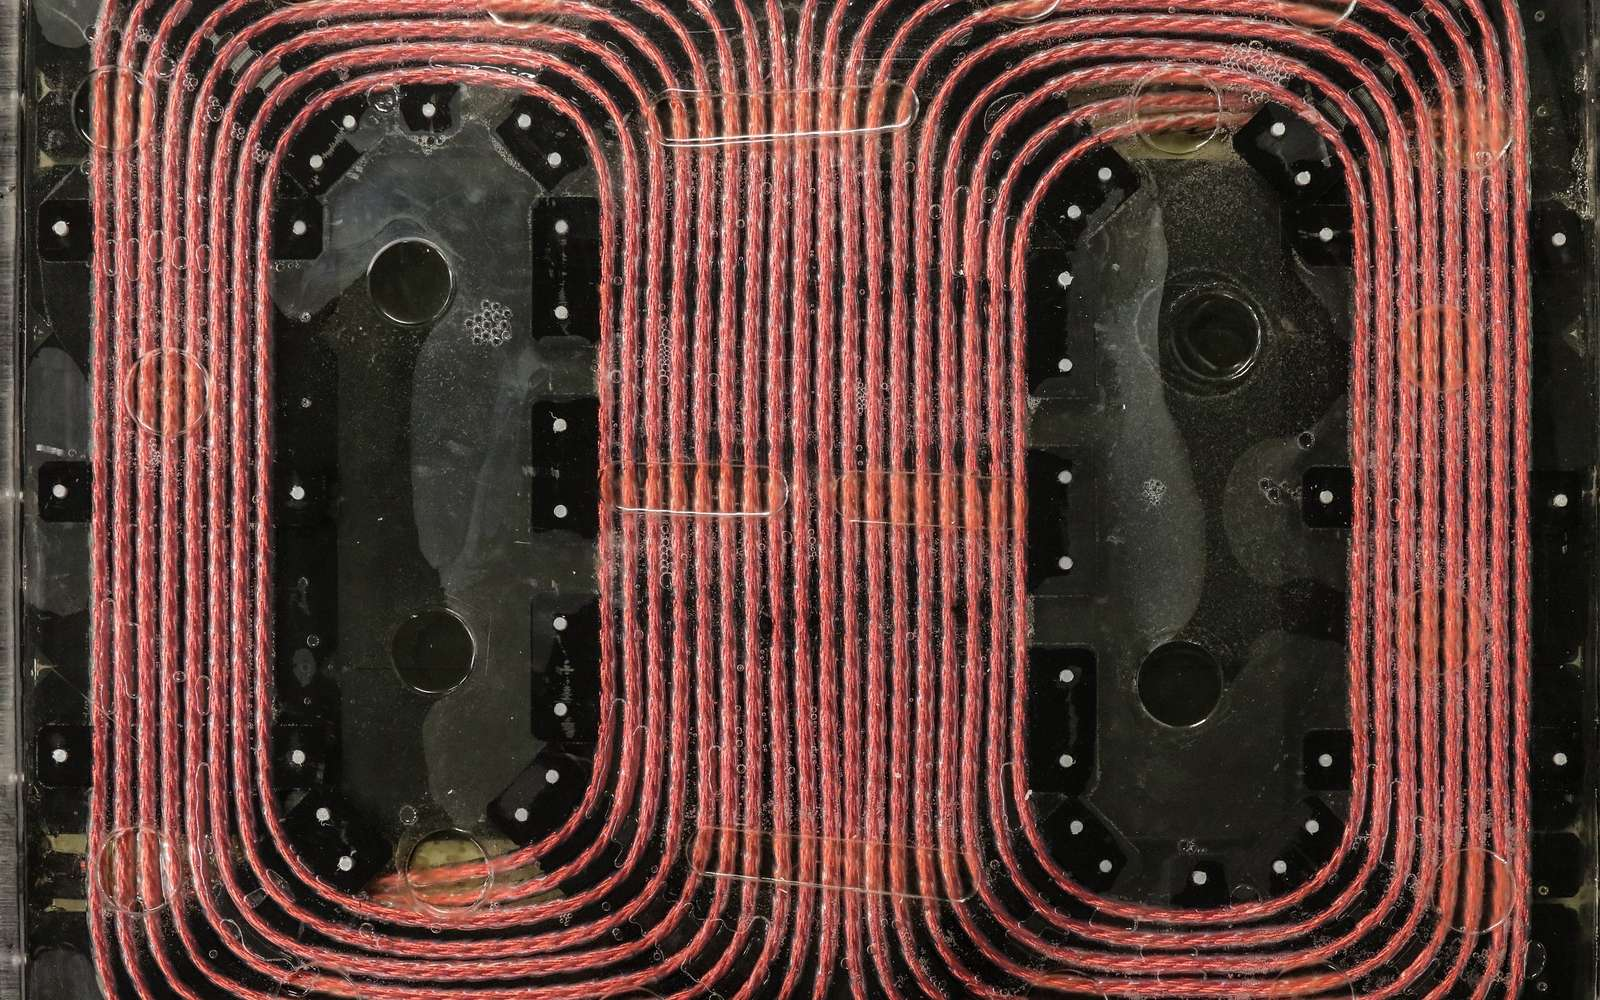 La bobine développée par l'Oak Ridge National Laboratory pour son dispositif de recharge sans fil. © Genevieve Martin, Oak Ridge National Laboratory, U.S. Dept. of Energy